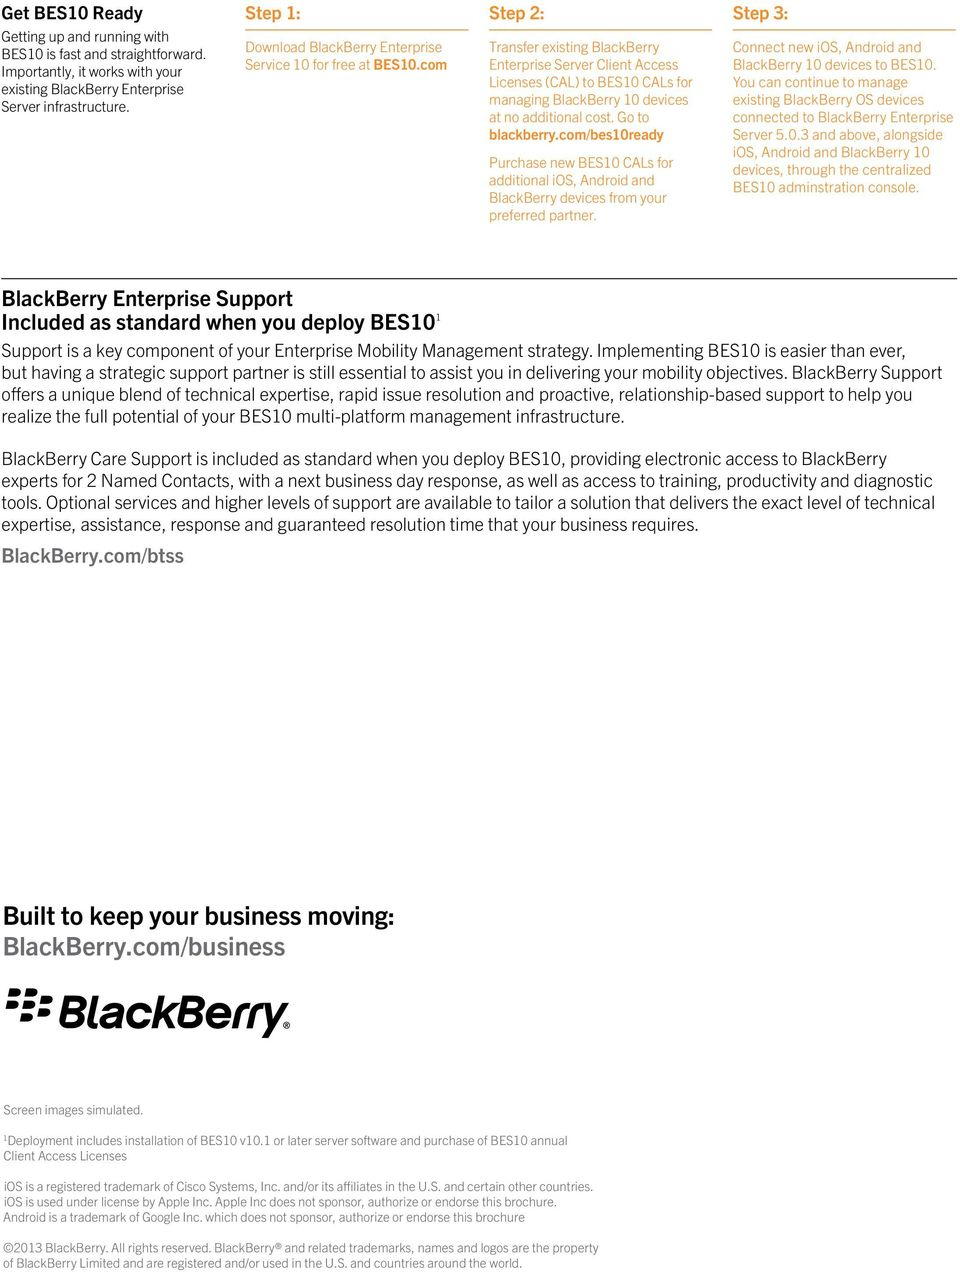 com Step 2: Transfer existing BlackBerry Enterprise Server Client Access Licenses (CAL) to BES10 CALs for managing BlackBerry 10 devices at no additional cost. Go to blackberry.